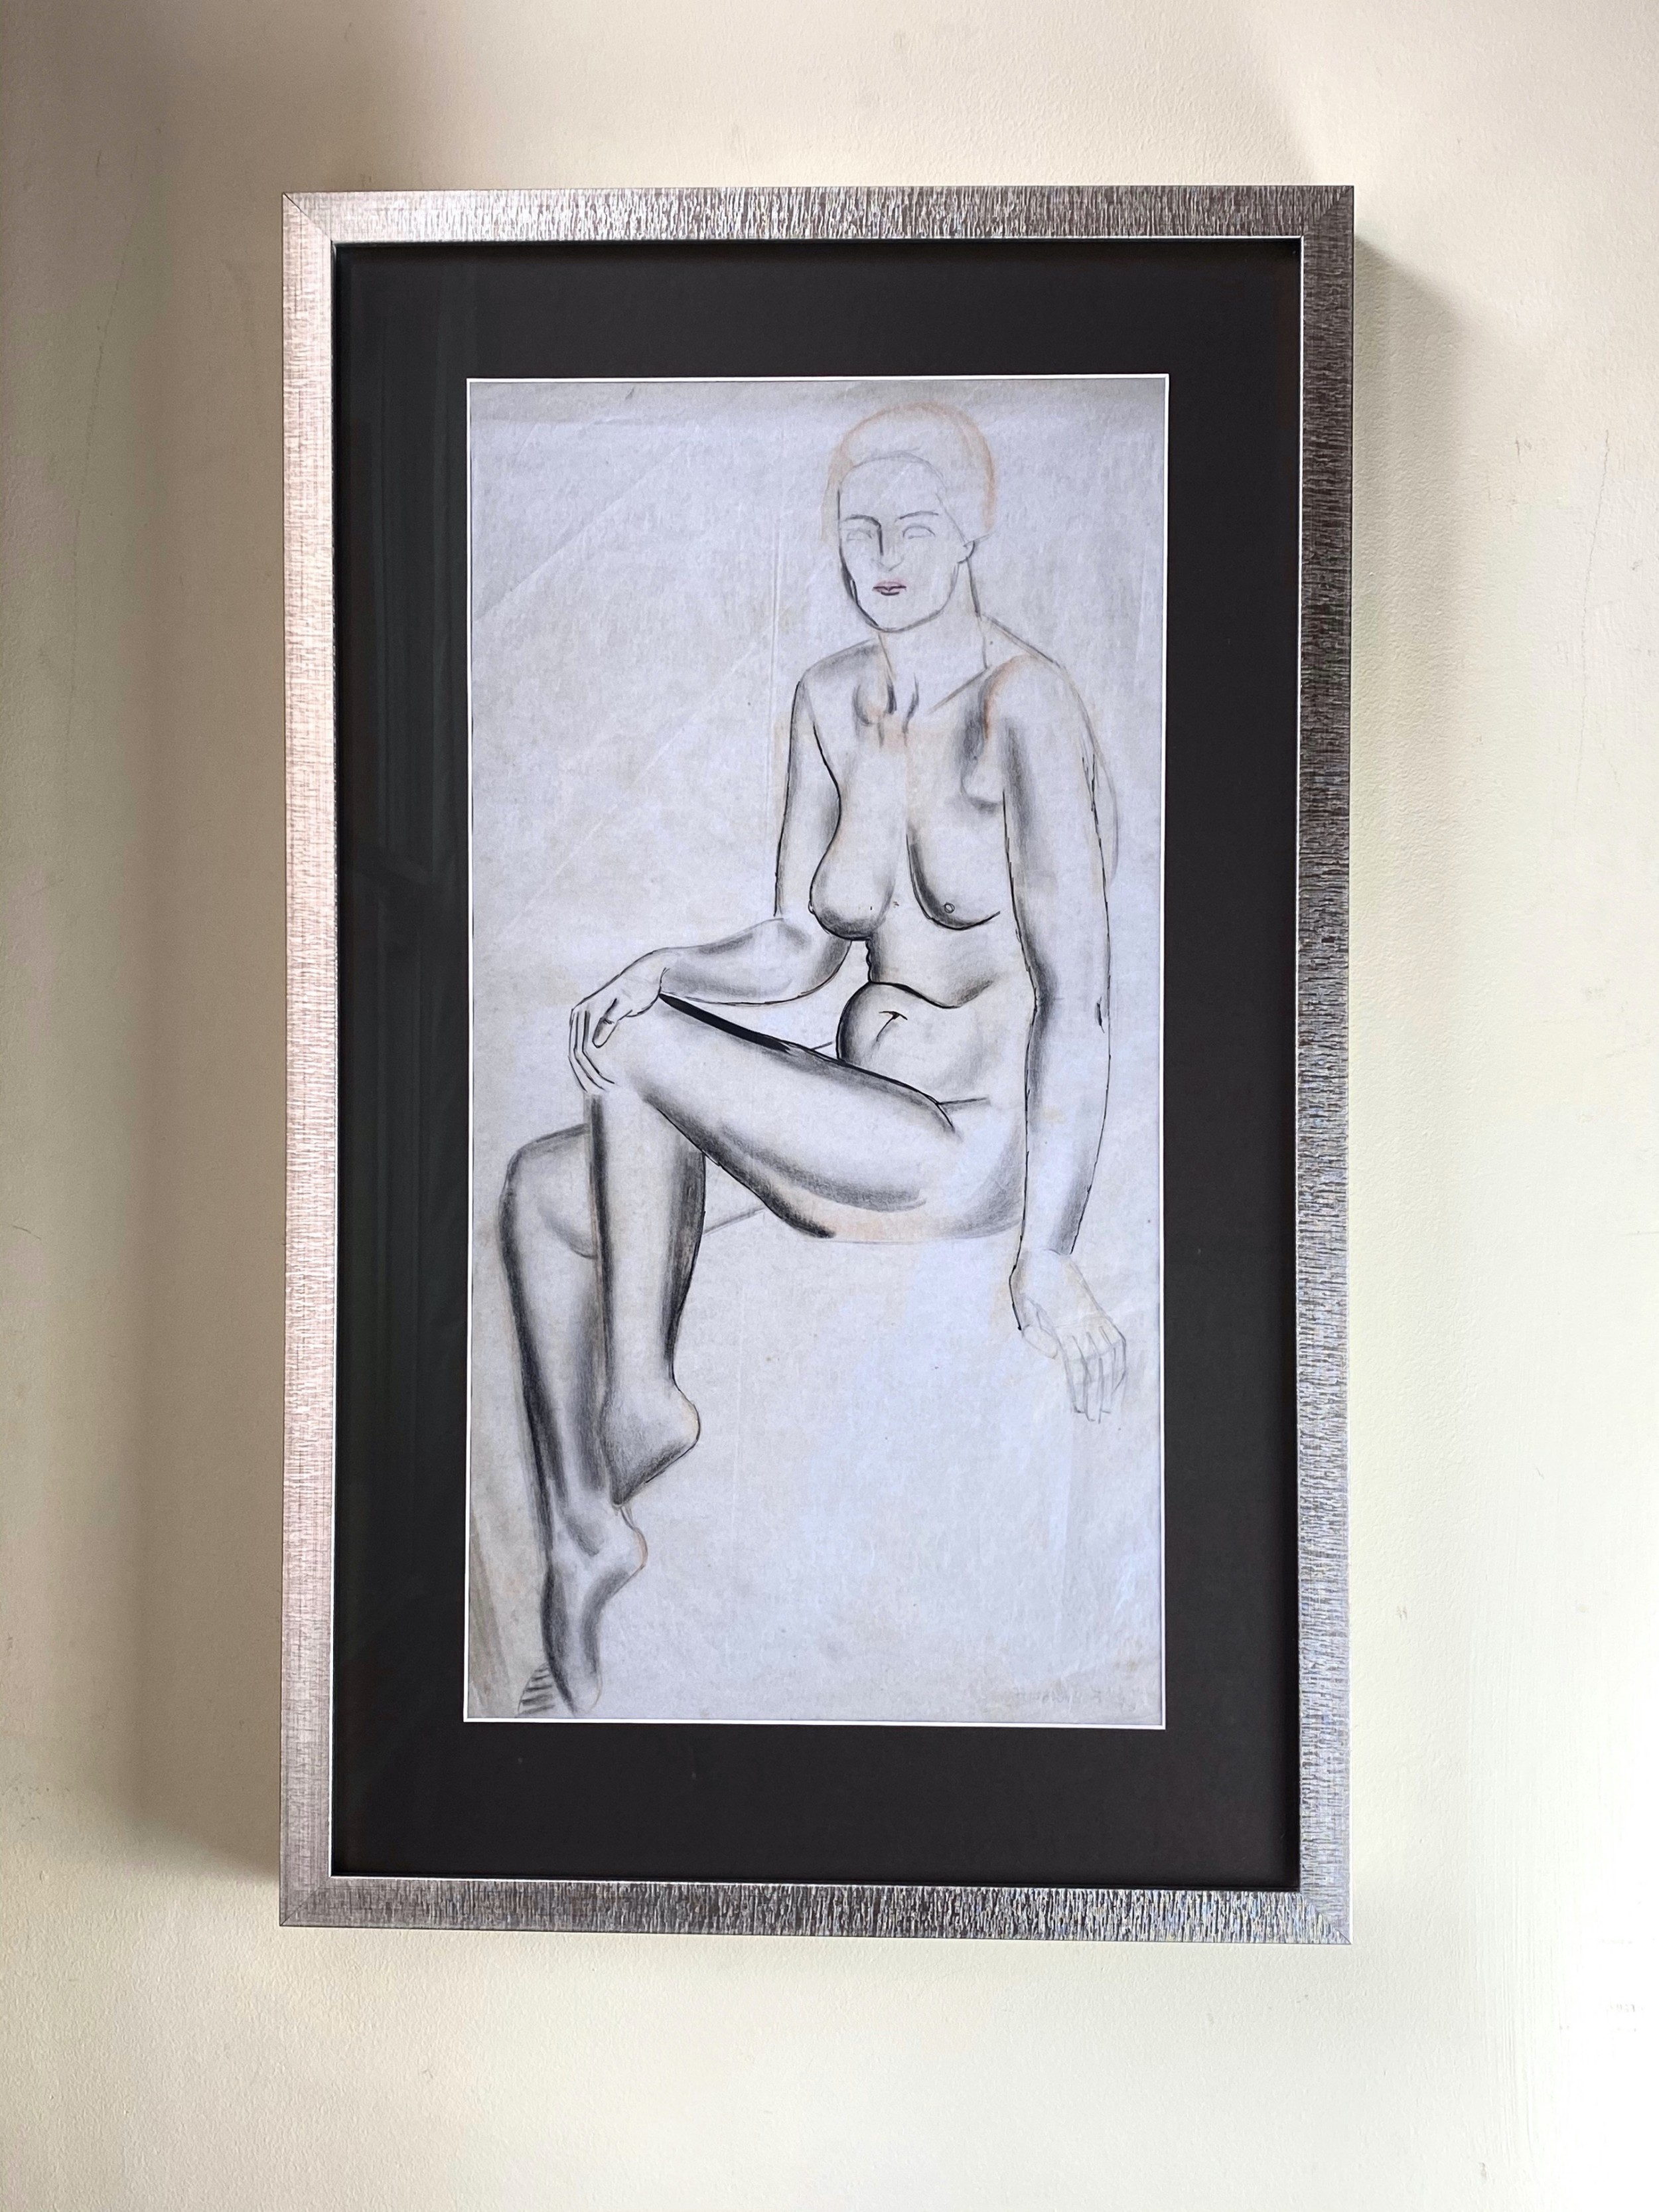 art deco female nude 1930's charcoal and crayon on paper